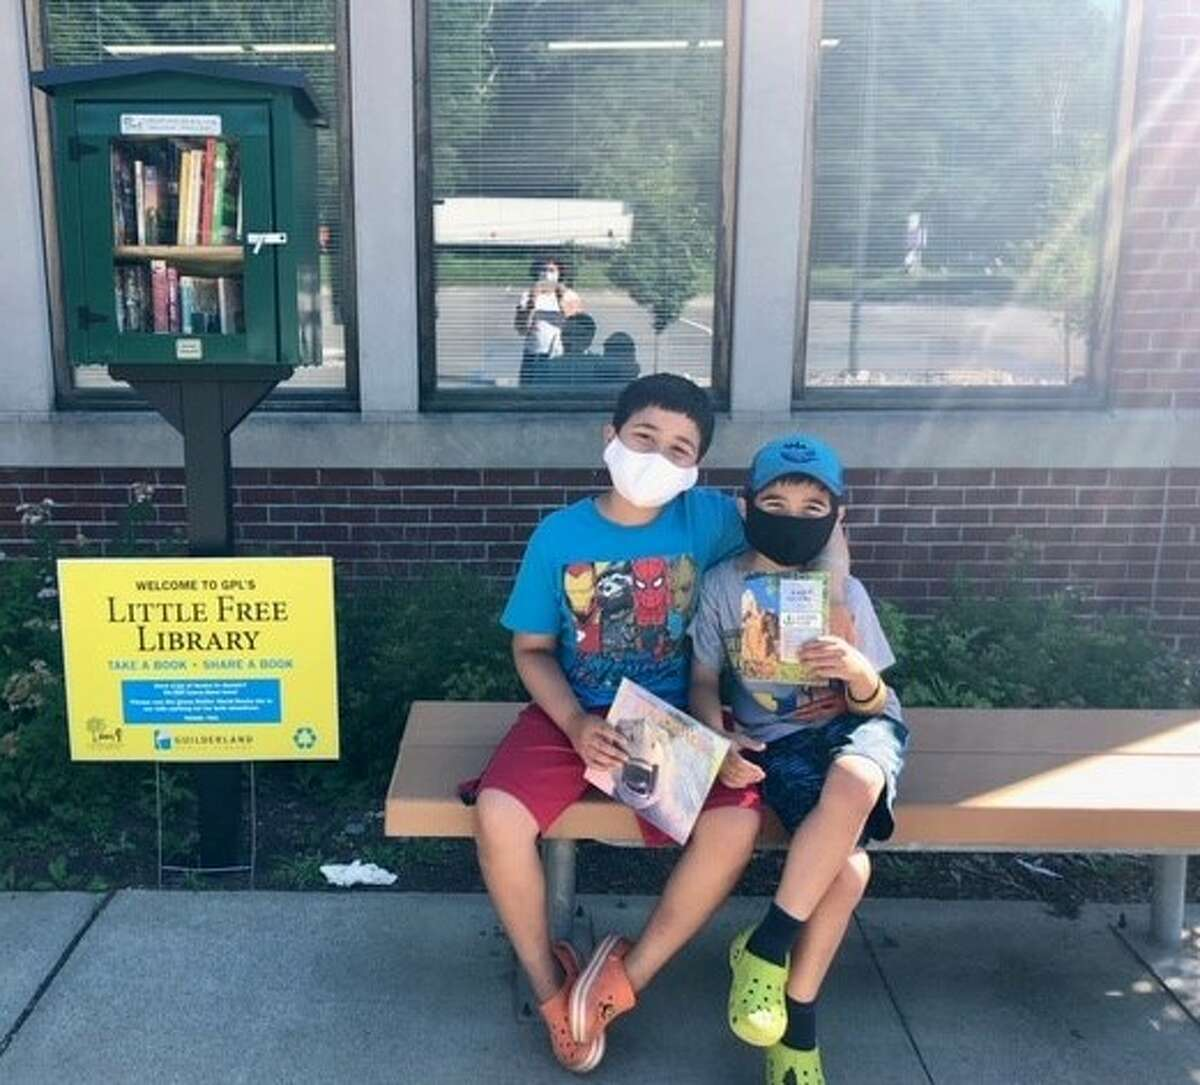 Henry and Oliver Rivas are avid readers and loyal Guilderland Public Library patrons, using the Little Free Library and curbside services extensively this summer. Their mother, Nareen, is the vice president of the library's Board of Trustees. (Courtesy Luanne Nicholson)